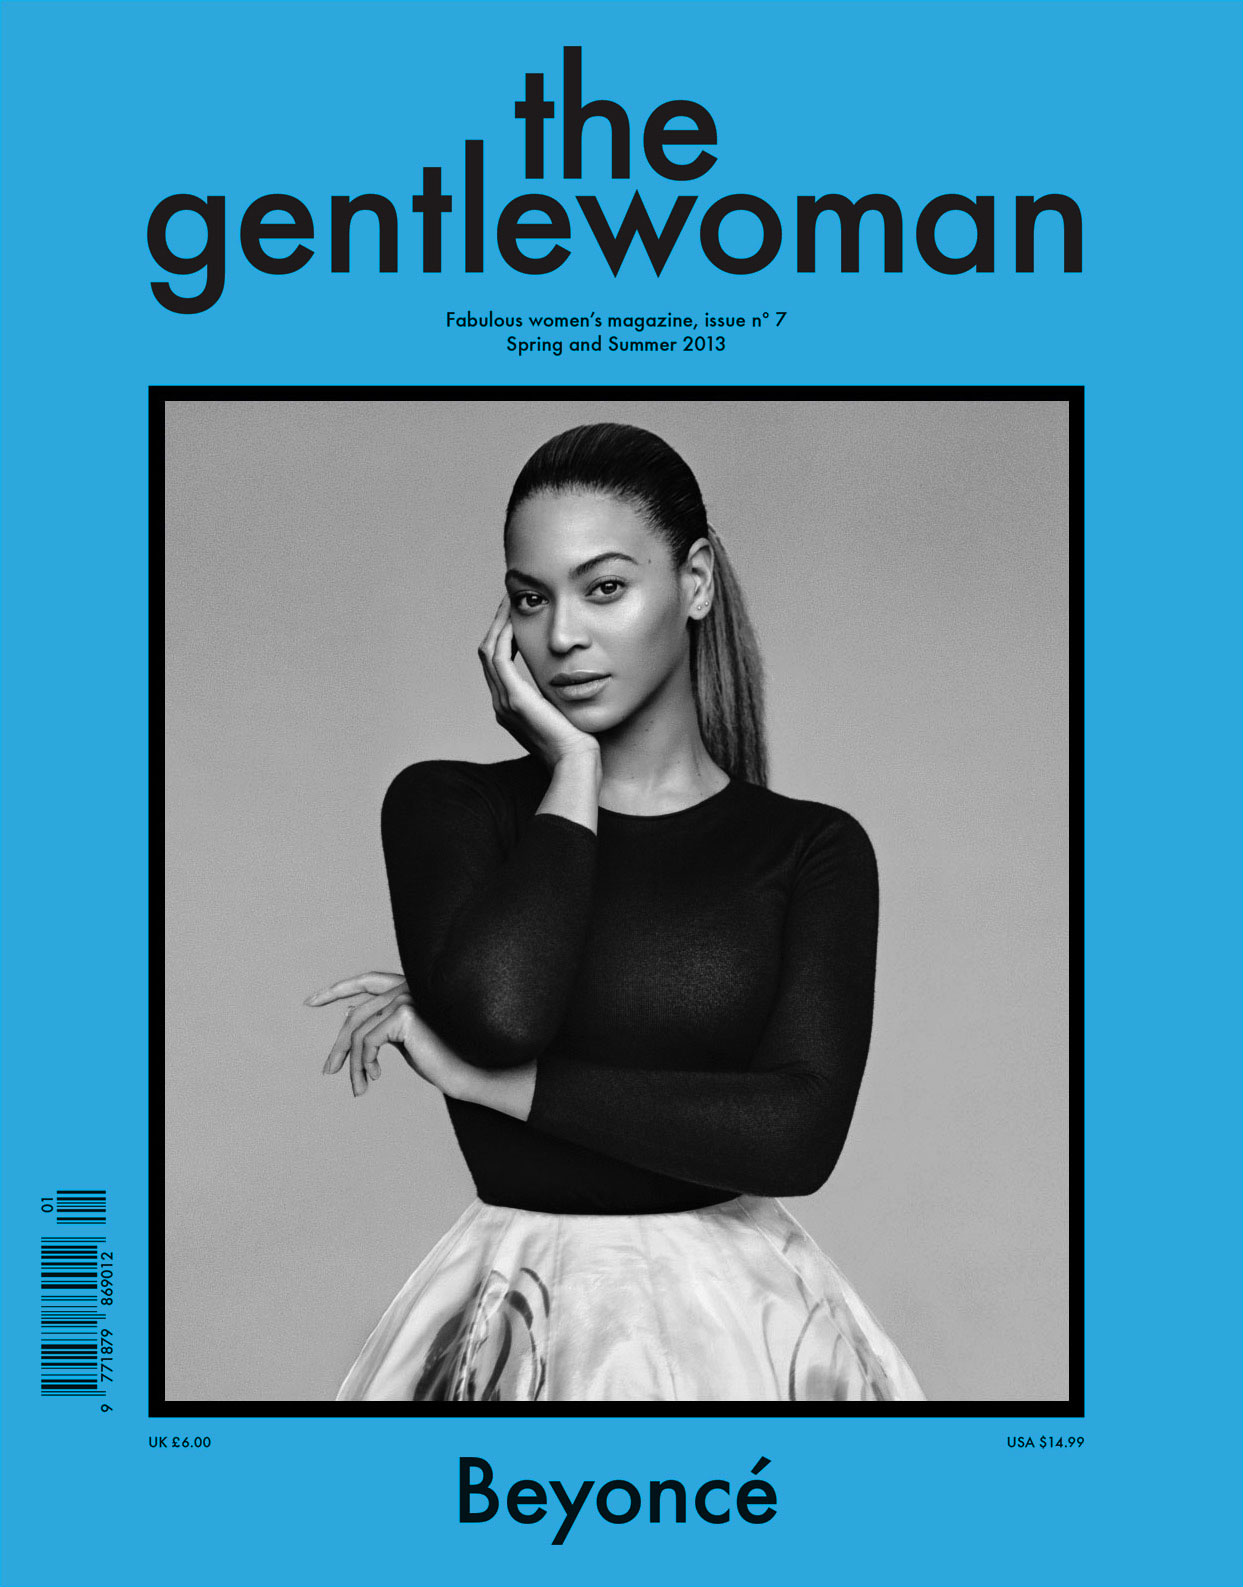 The Gentlewoman Cover Spring and Summer 2013 Beyoncé